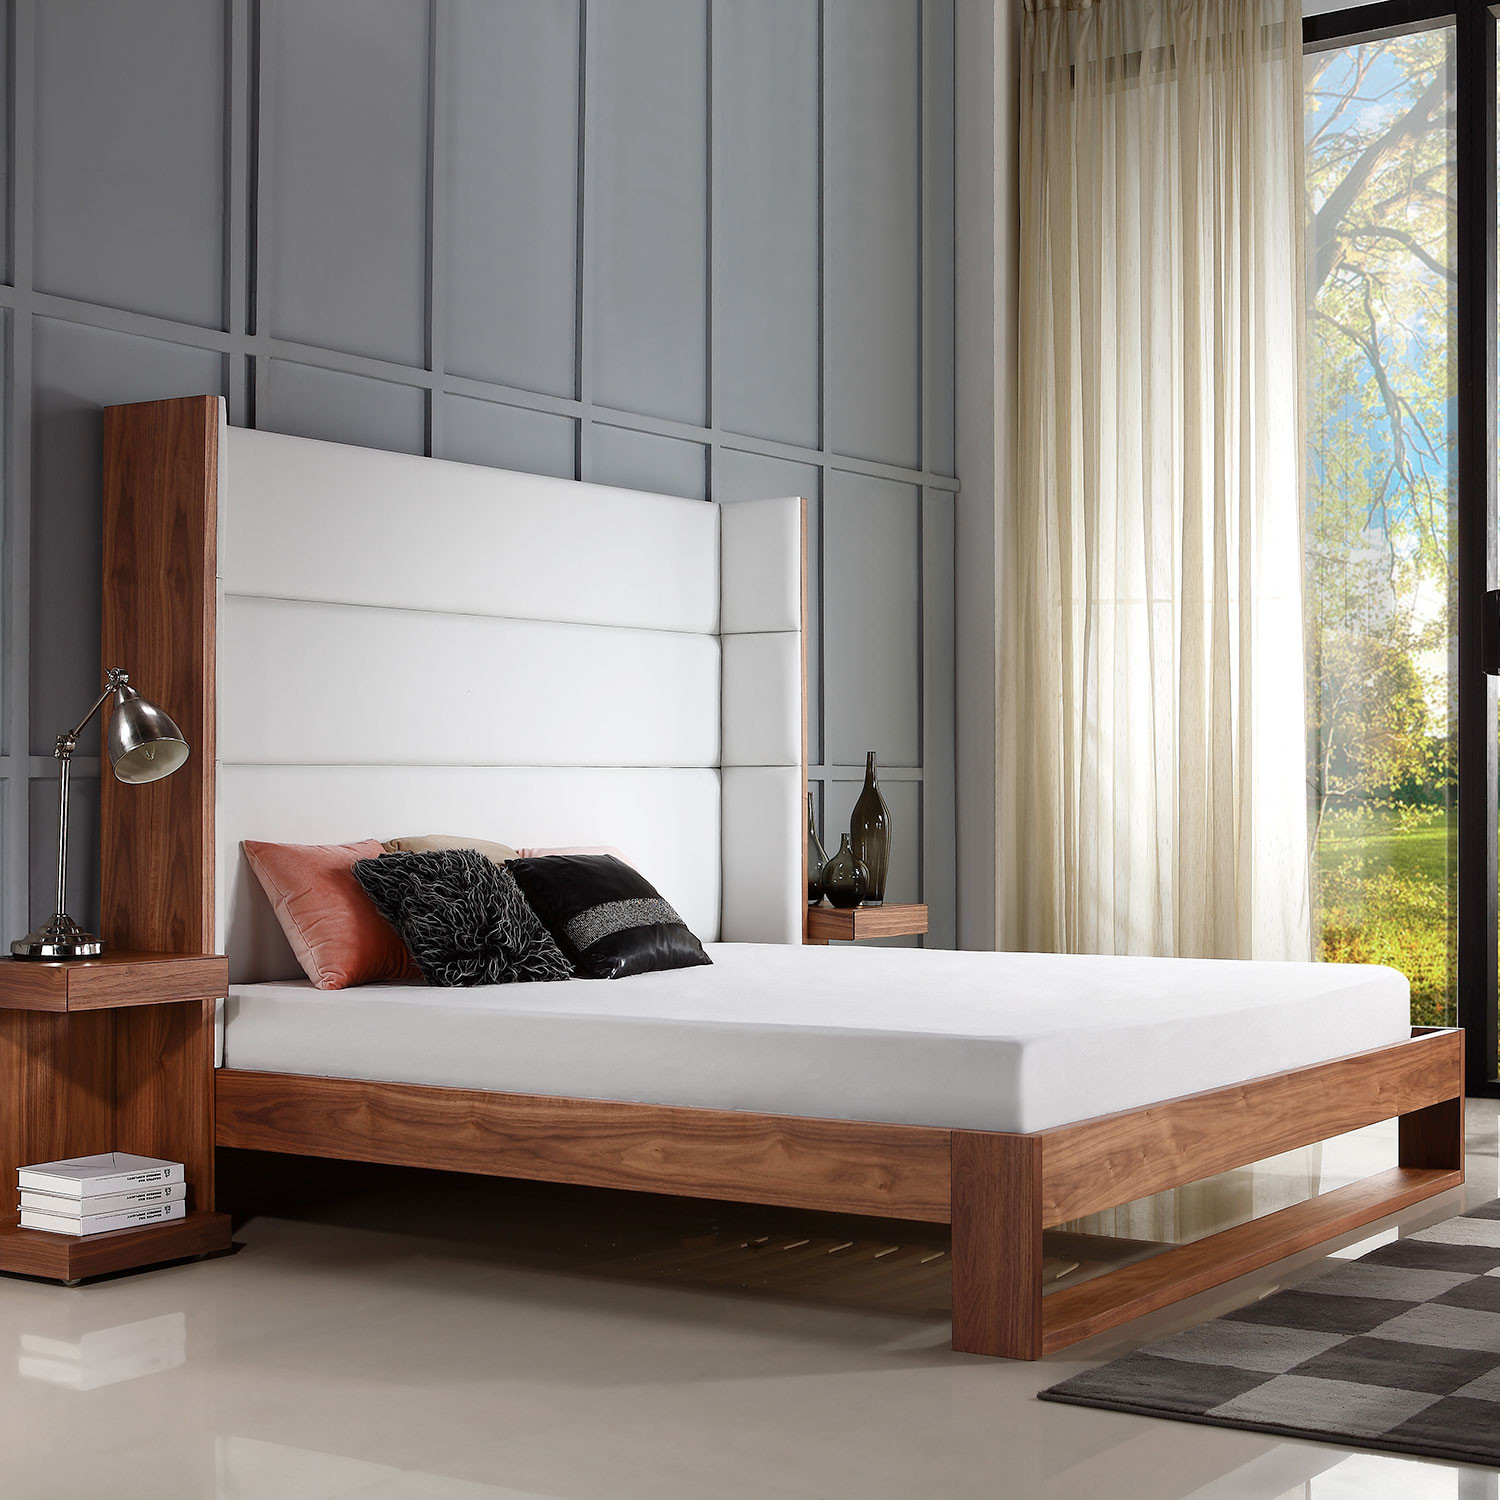 Lyon Walnut Bedroom Furniture Lyon Collection King Bed Walnut Veneer Taupe Fabric